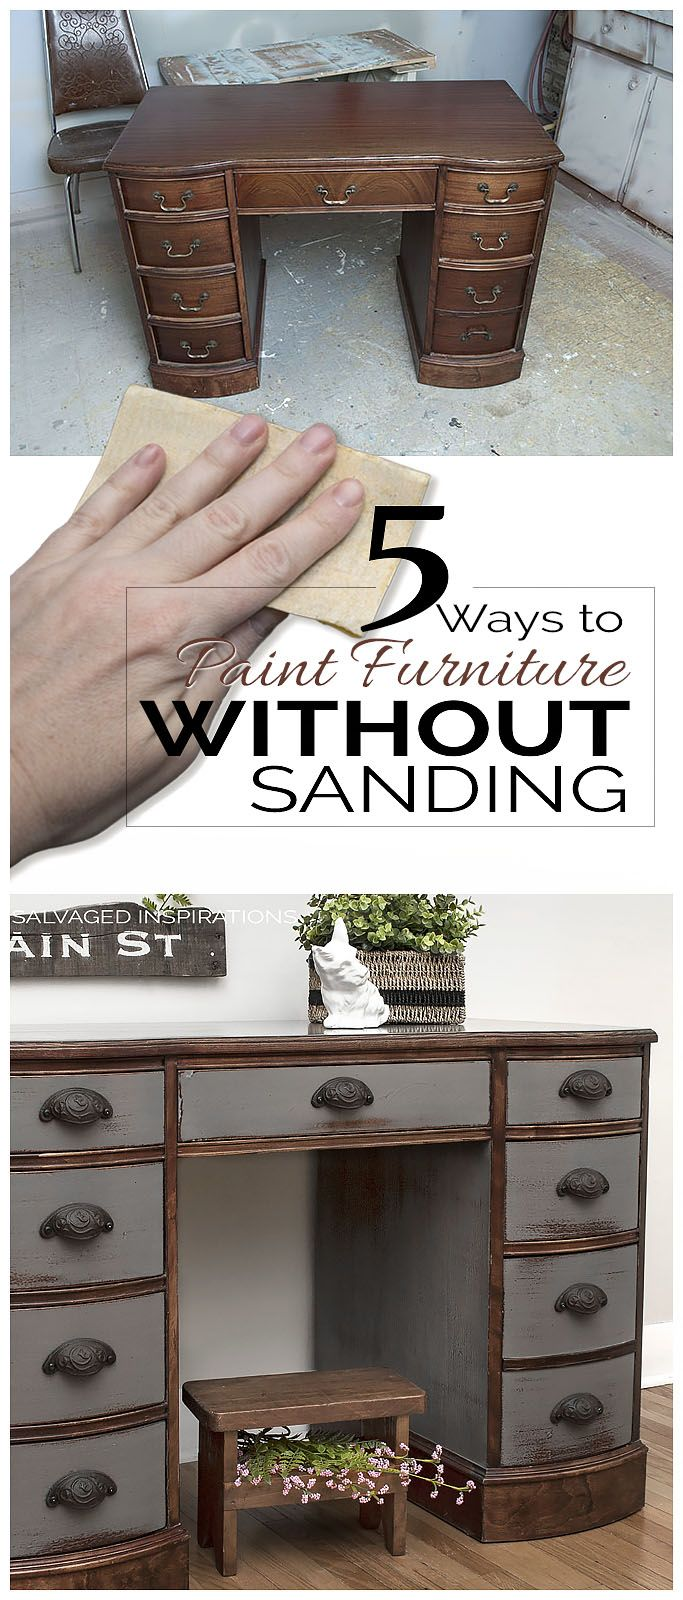 I automatically think of Chalk Paints when I think of no-prep and no-sand, but here are 5 Ways to Paint Furniture WITHOUT Sanding! Good to know. :)